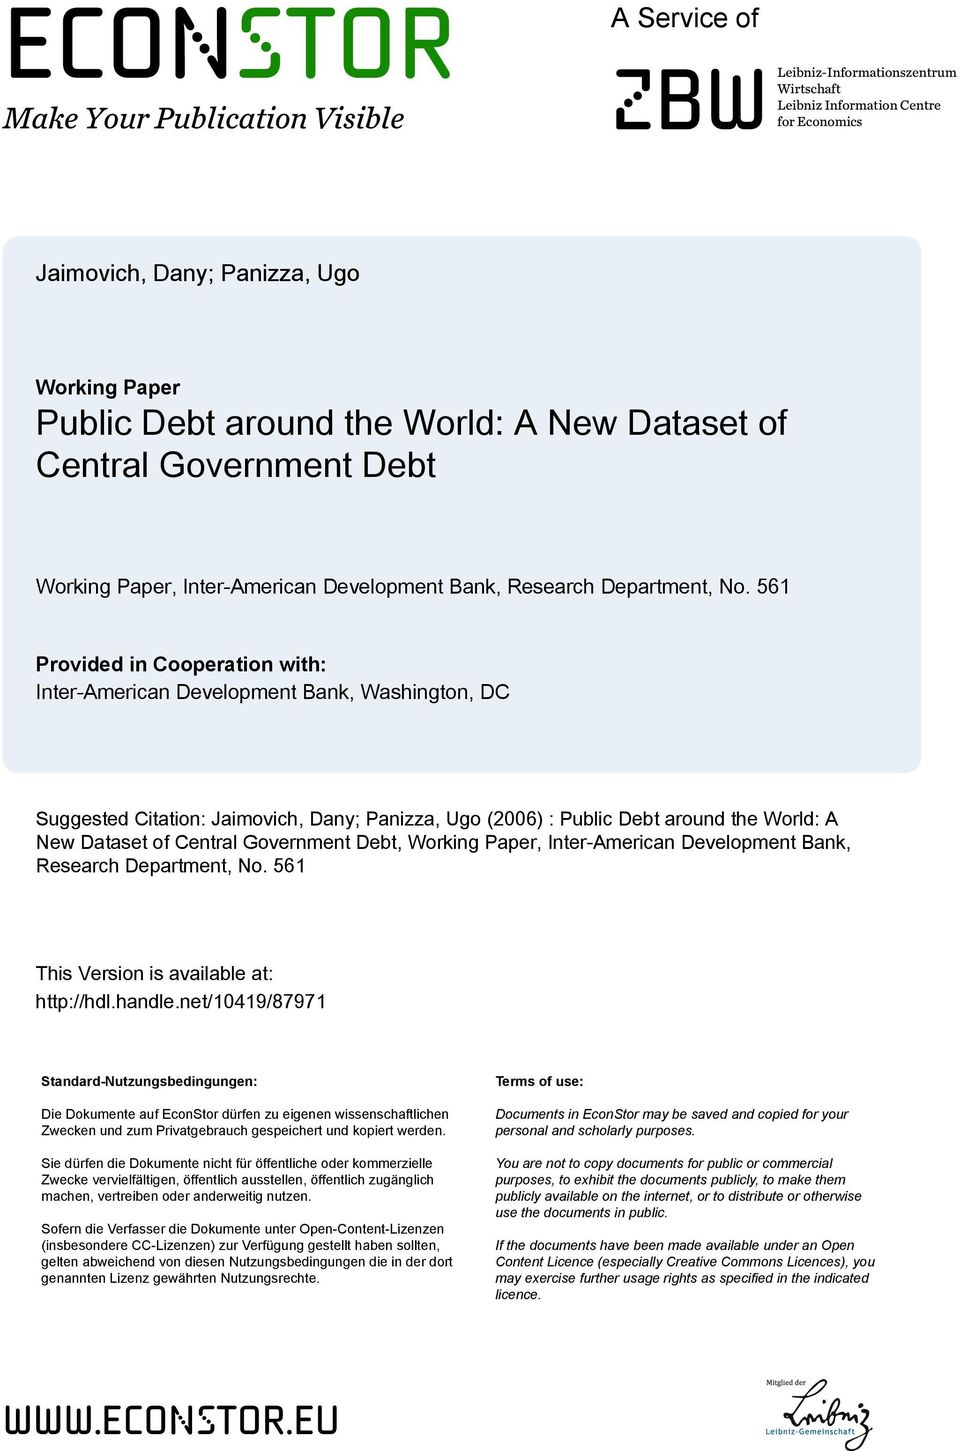 561 Provided in Cooperation with: Inter-American Development Bank, Washington, DC Suggested Citation: Jaimovich, Dany; Panizza, Ugo (2006) : Public Debt around the World: A New Dataset of Central